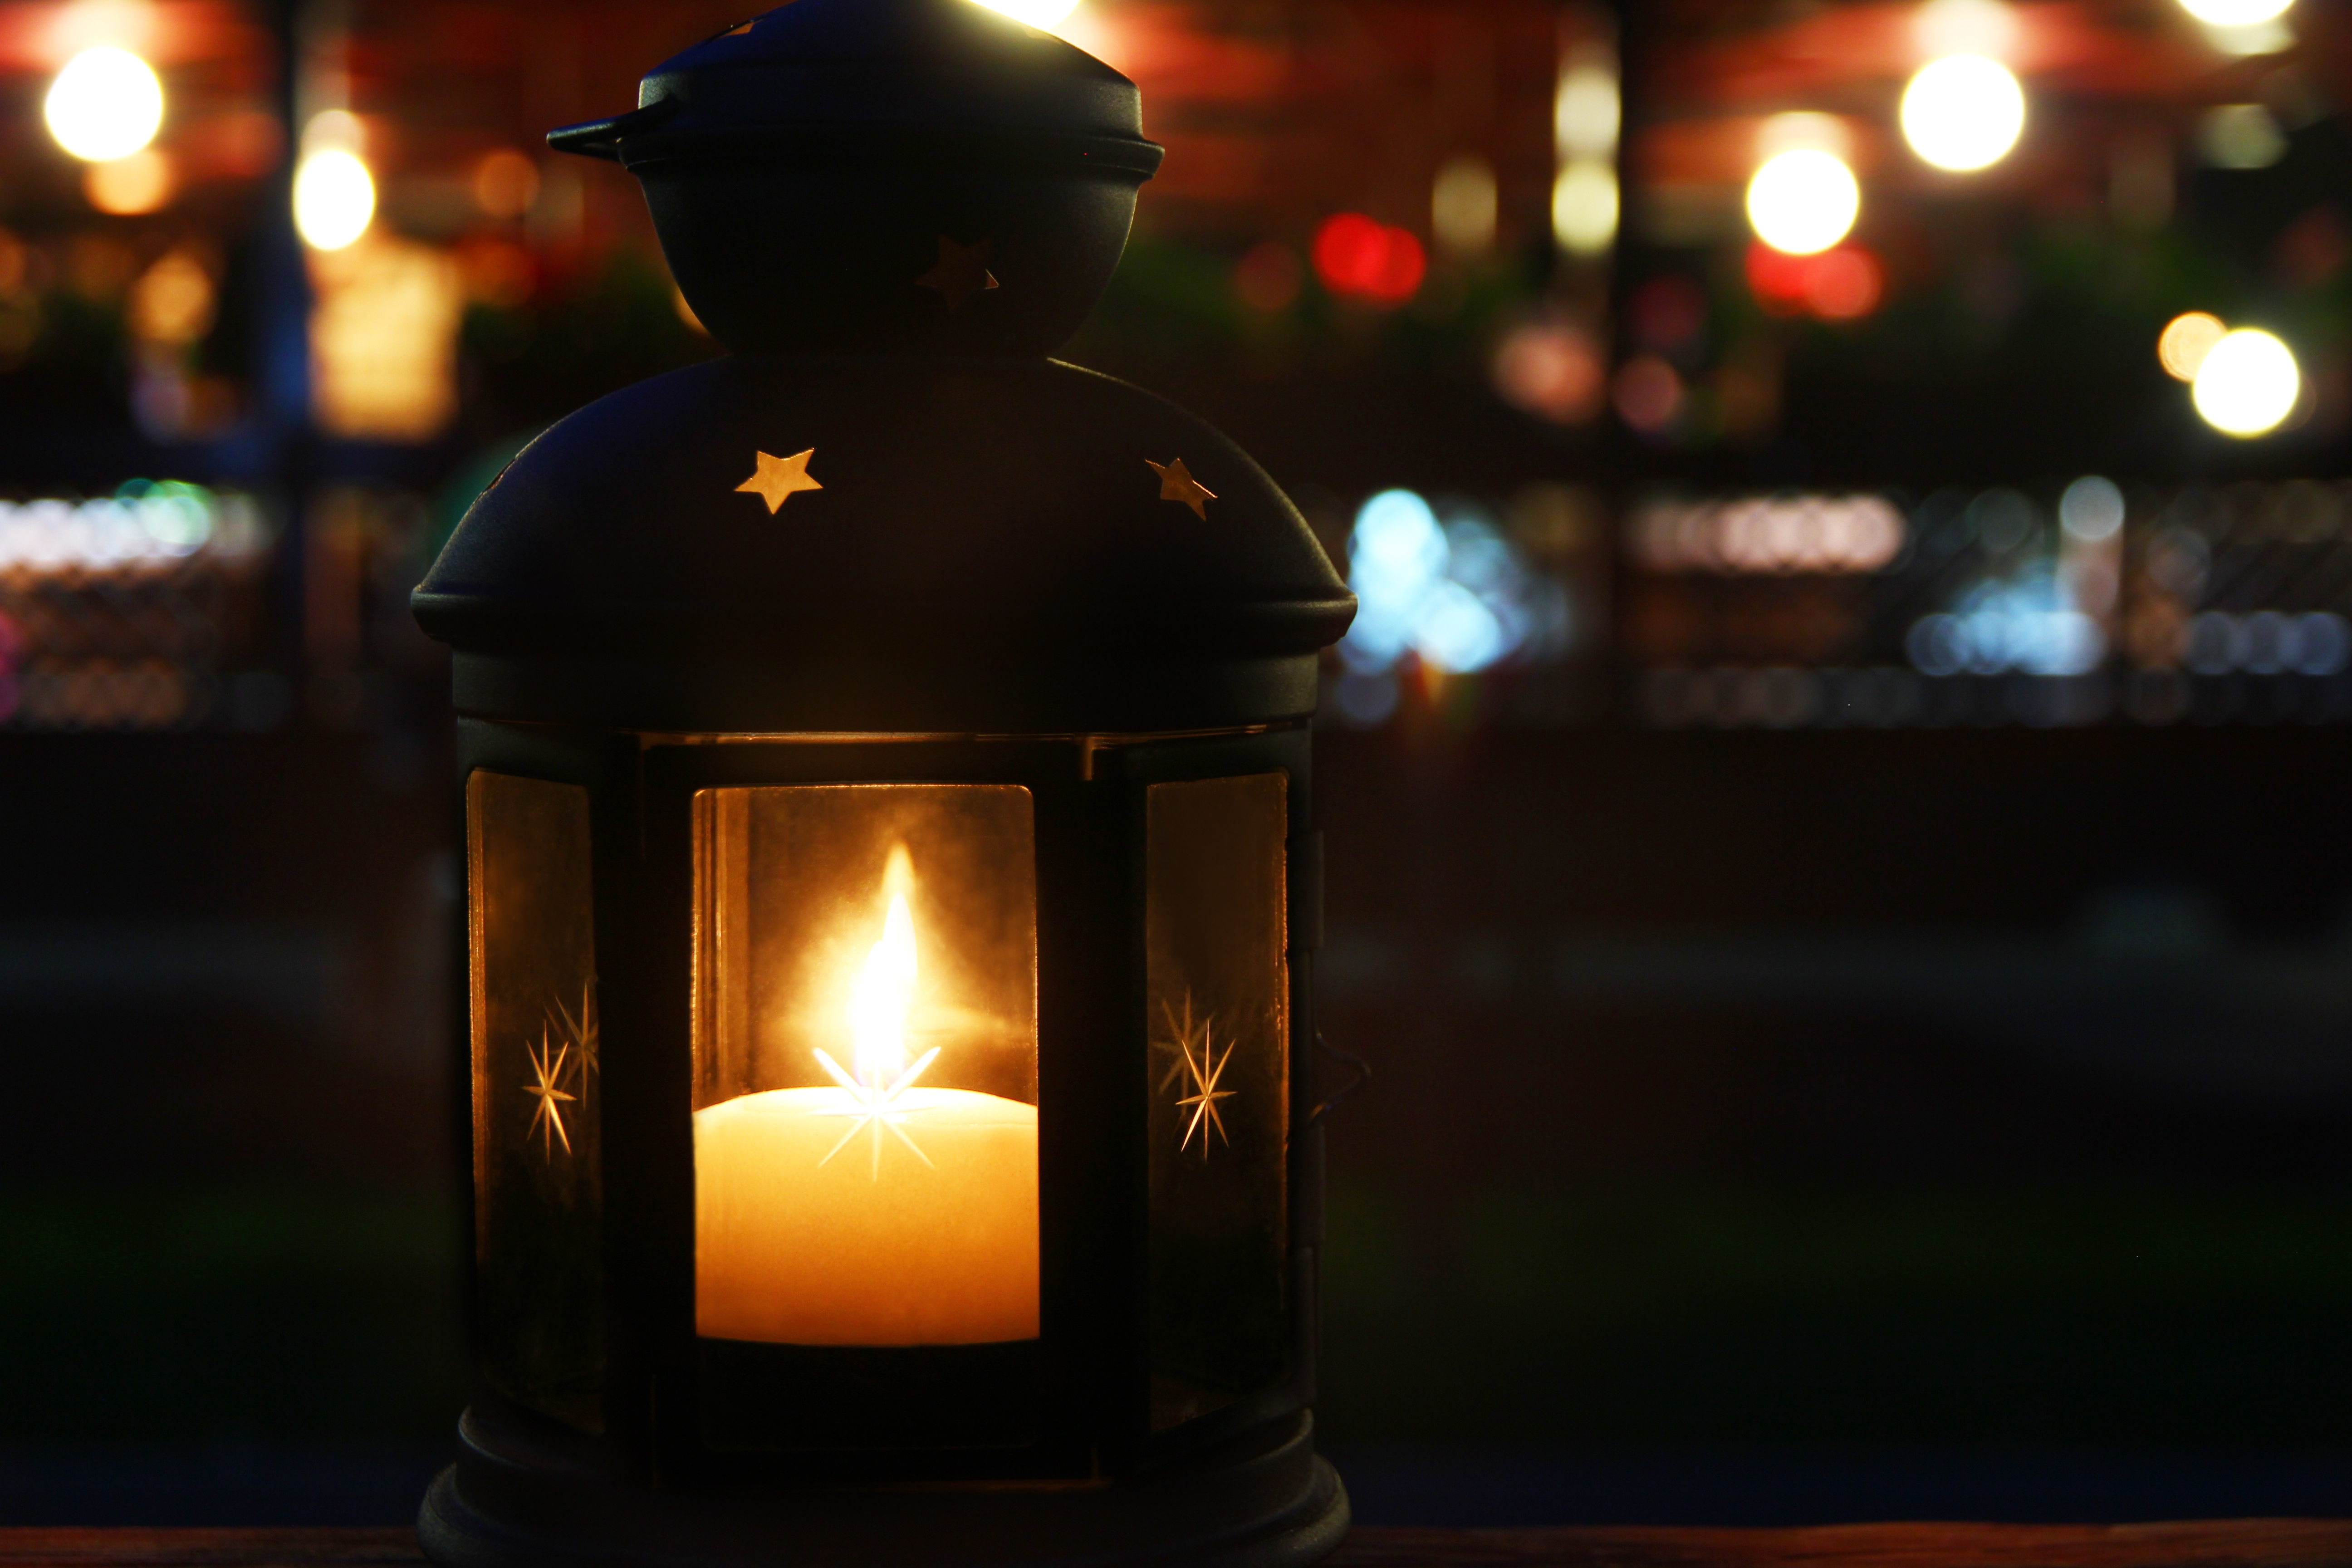 How To Use Outdoor Decorative Candle Lanterns: 5 Steps intended for Outdoor Tea Light Lanterns (Image 6 of 20)